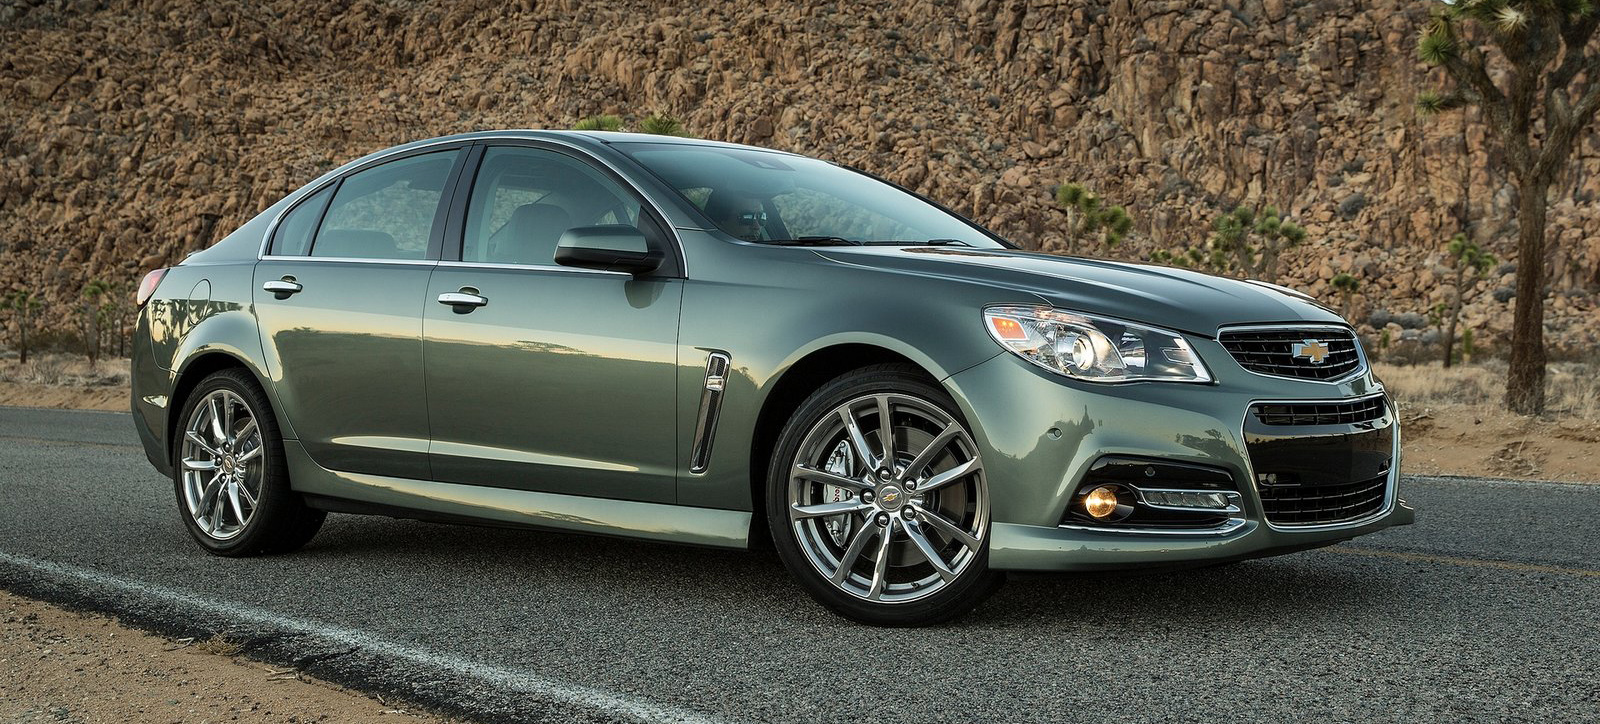 Navy Green 2015 Chevrolet SS